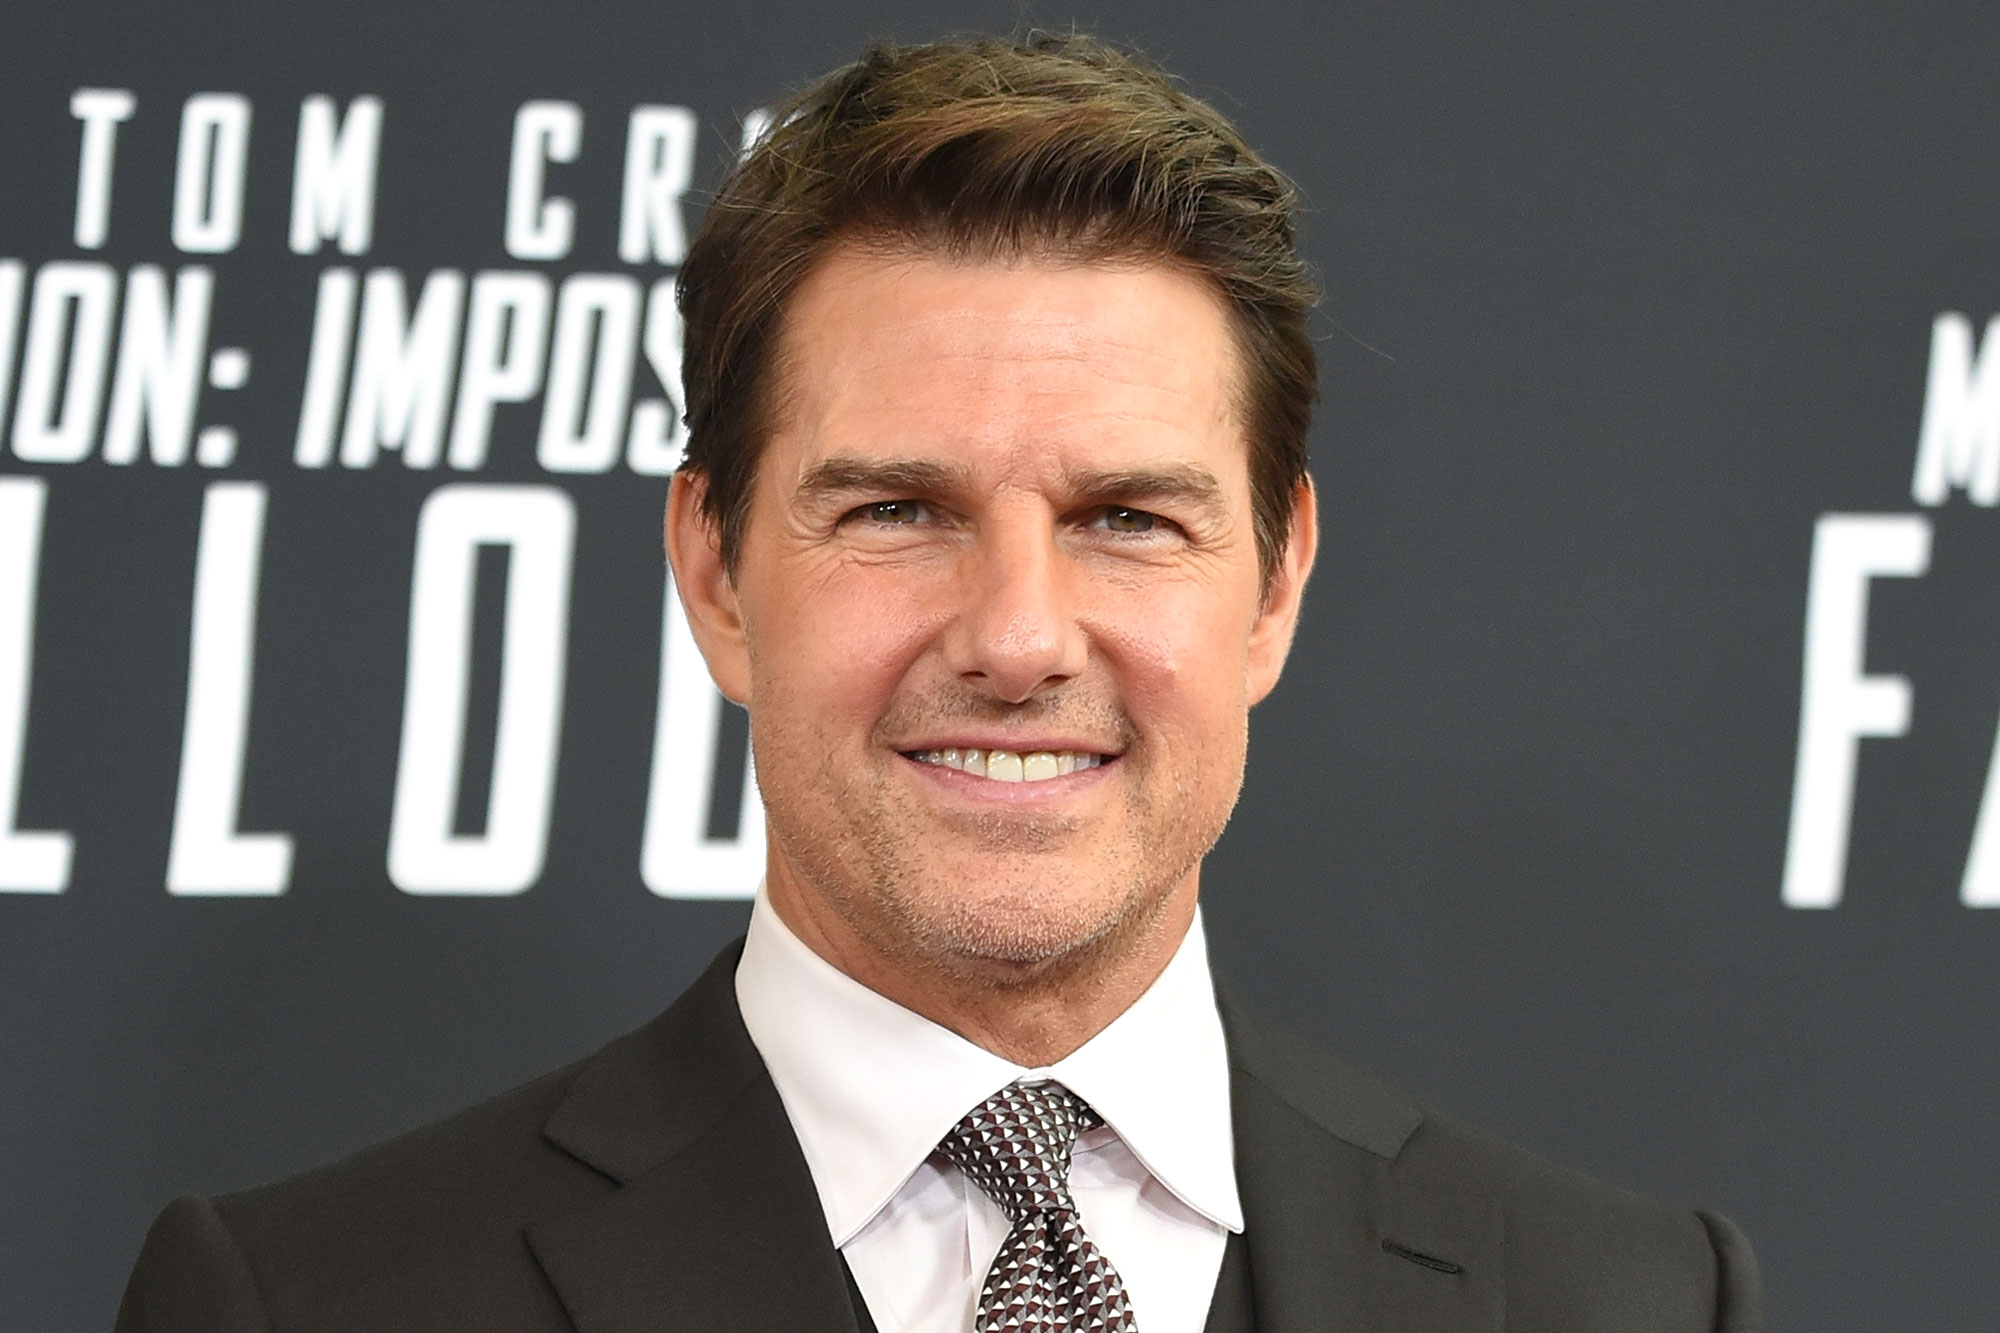 Tom Cruise Puts On Mask To See Tenet In Theater Ew Com